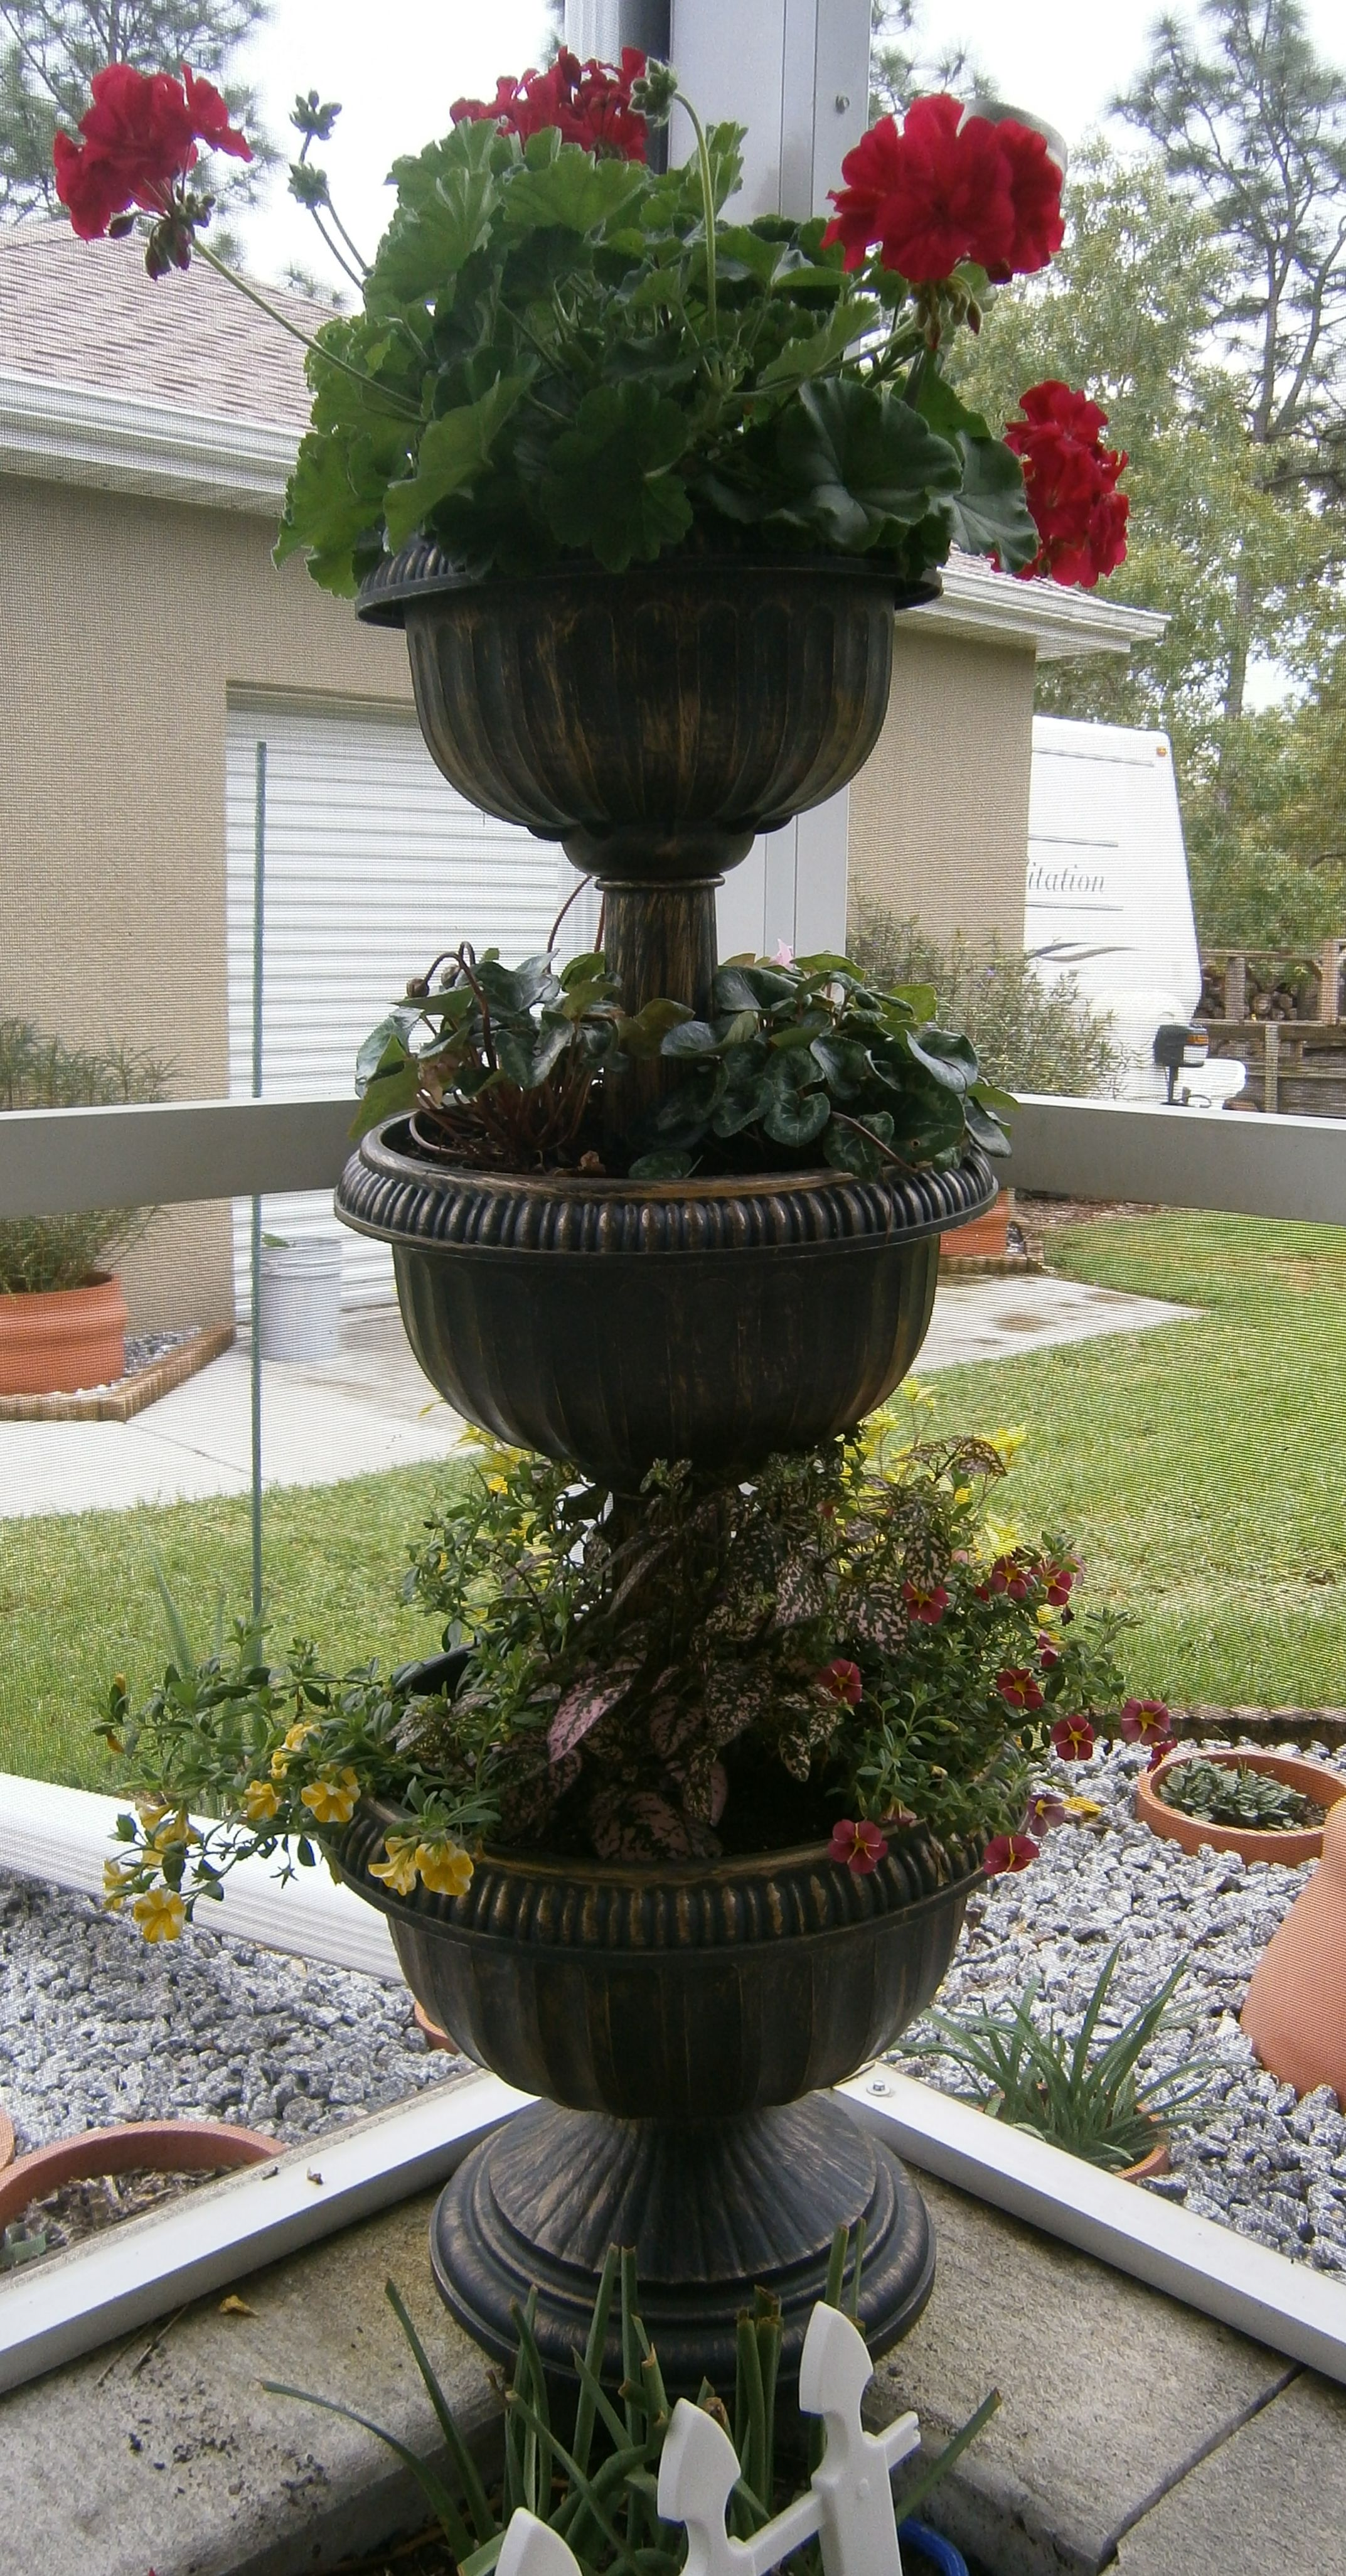 3 Tiered Pot Flowers From Lowes Like The Trailing Ones In This